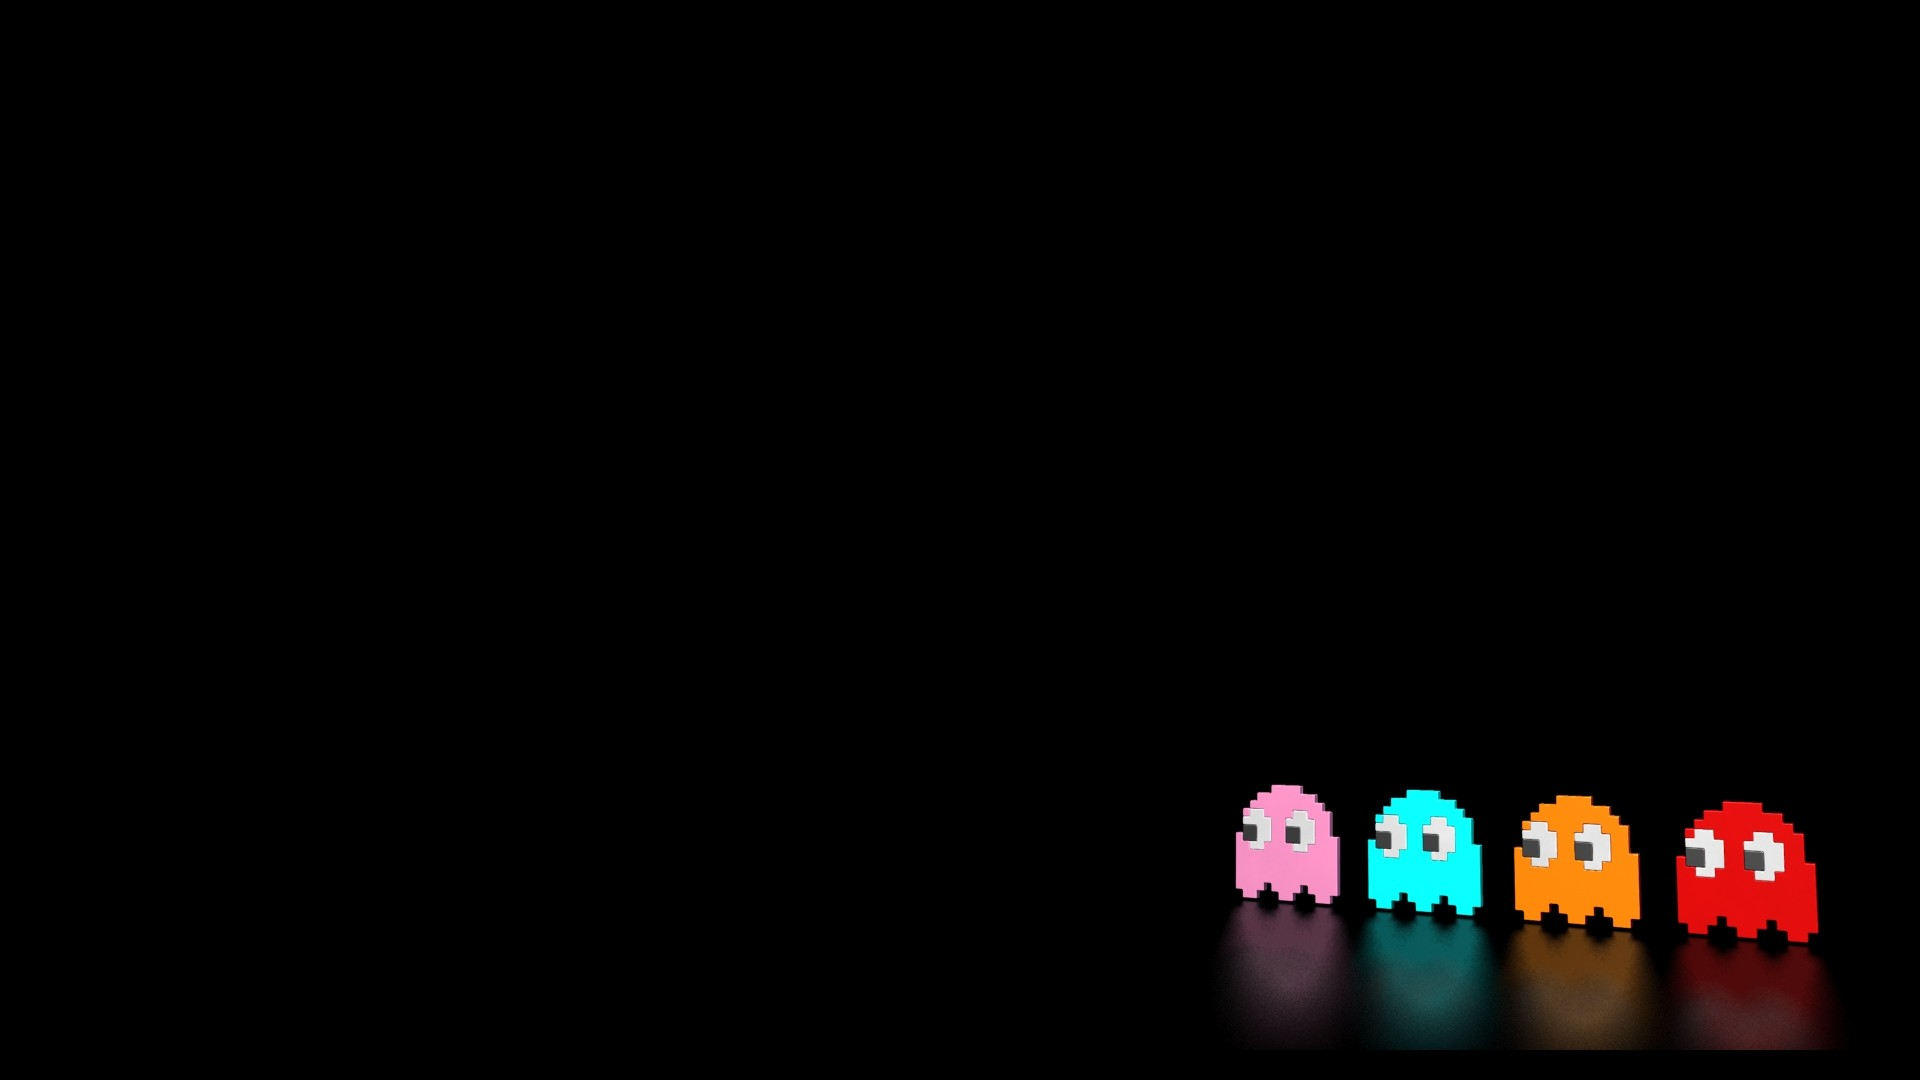 1920x1080 Free 8bit Pacman Wallpapers, Free 8bit Pacman HD Wallpapers, 8bit .